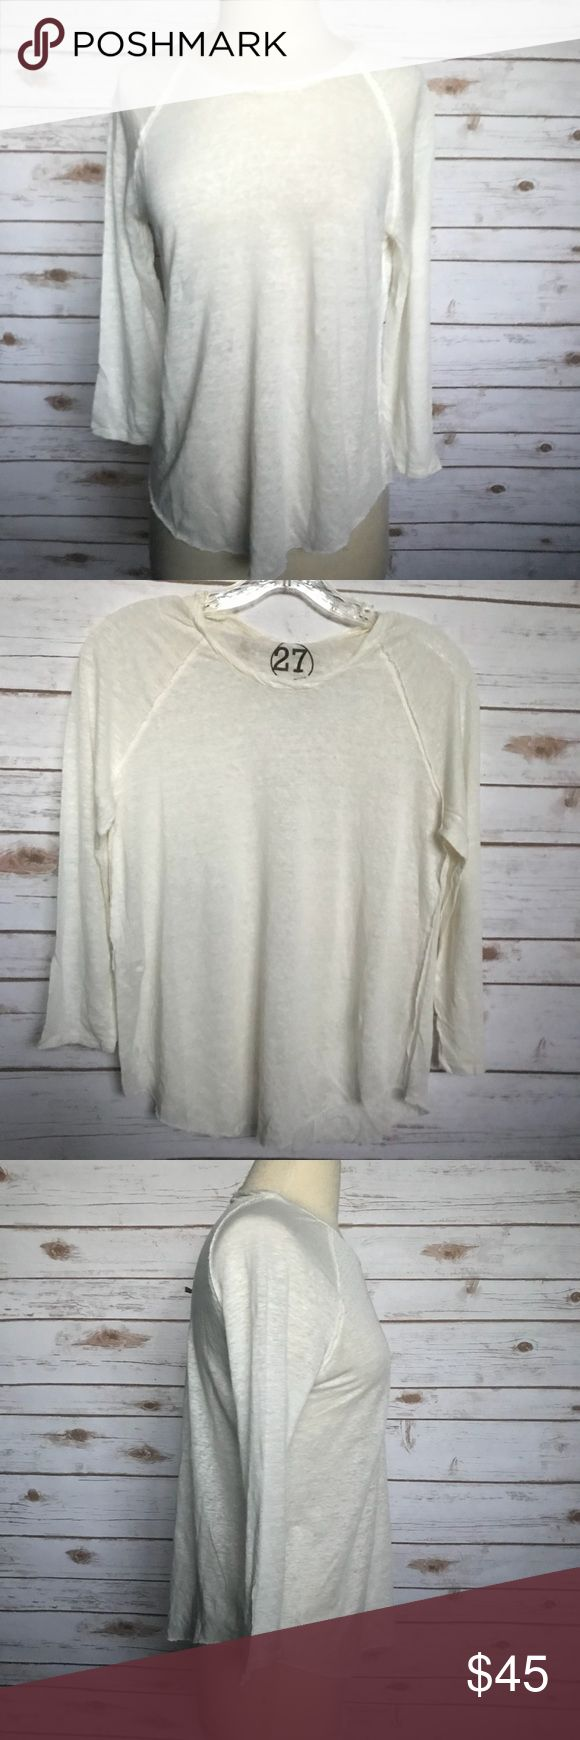 """🆕 27 MILES MALIBU Harlyn Cream Long Sleeve Top M This27 MILES MALIBU Harlyn Cream Long Sleeve Casual Top - Size M is New With Tags and Has Never Been Worn.  The Size and Material Tags are missing, please pay close attention to measurements. DESCRIPTION: - Cotton Blend - Thin Material, slightly see through - Casual Crewneck Long Sleeve Top - Rounded Hem  MEASUREMENTS (Laying Flat): Bust: 18.5"""" Sleeve: 24.5"""" Length: 24"""" 27 Miles Malibu Tops Tees - Long Sleeve"""